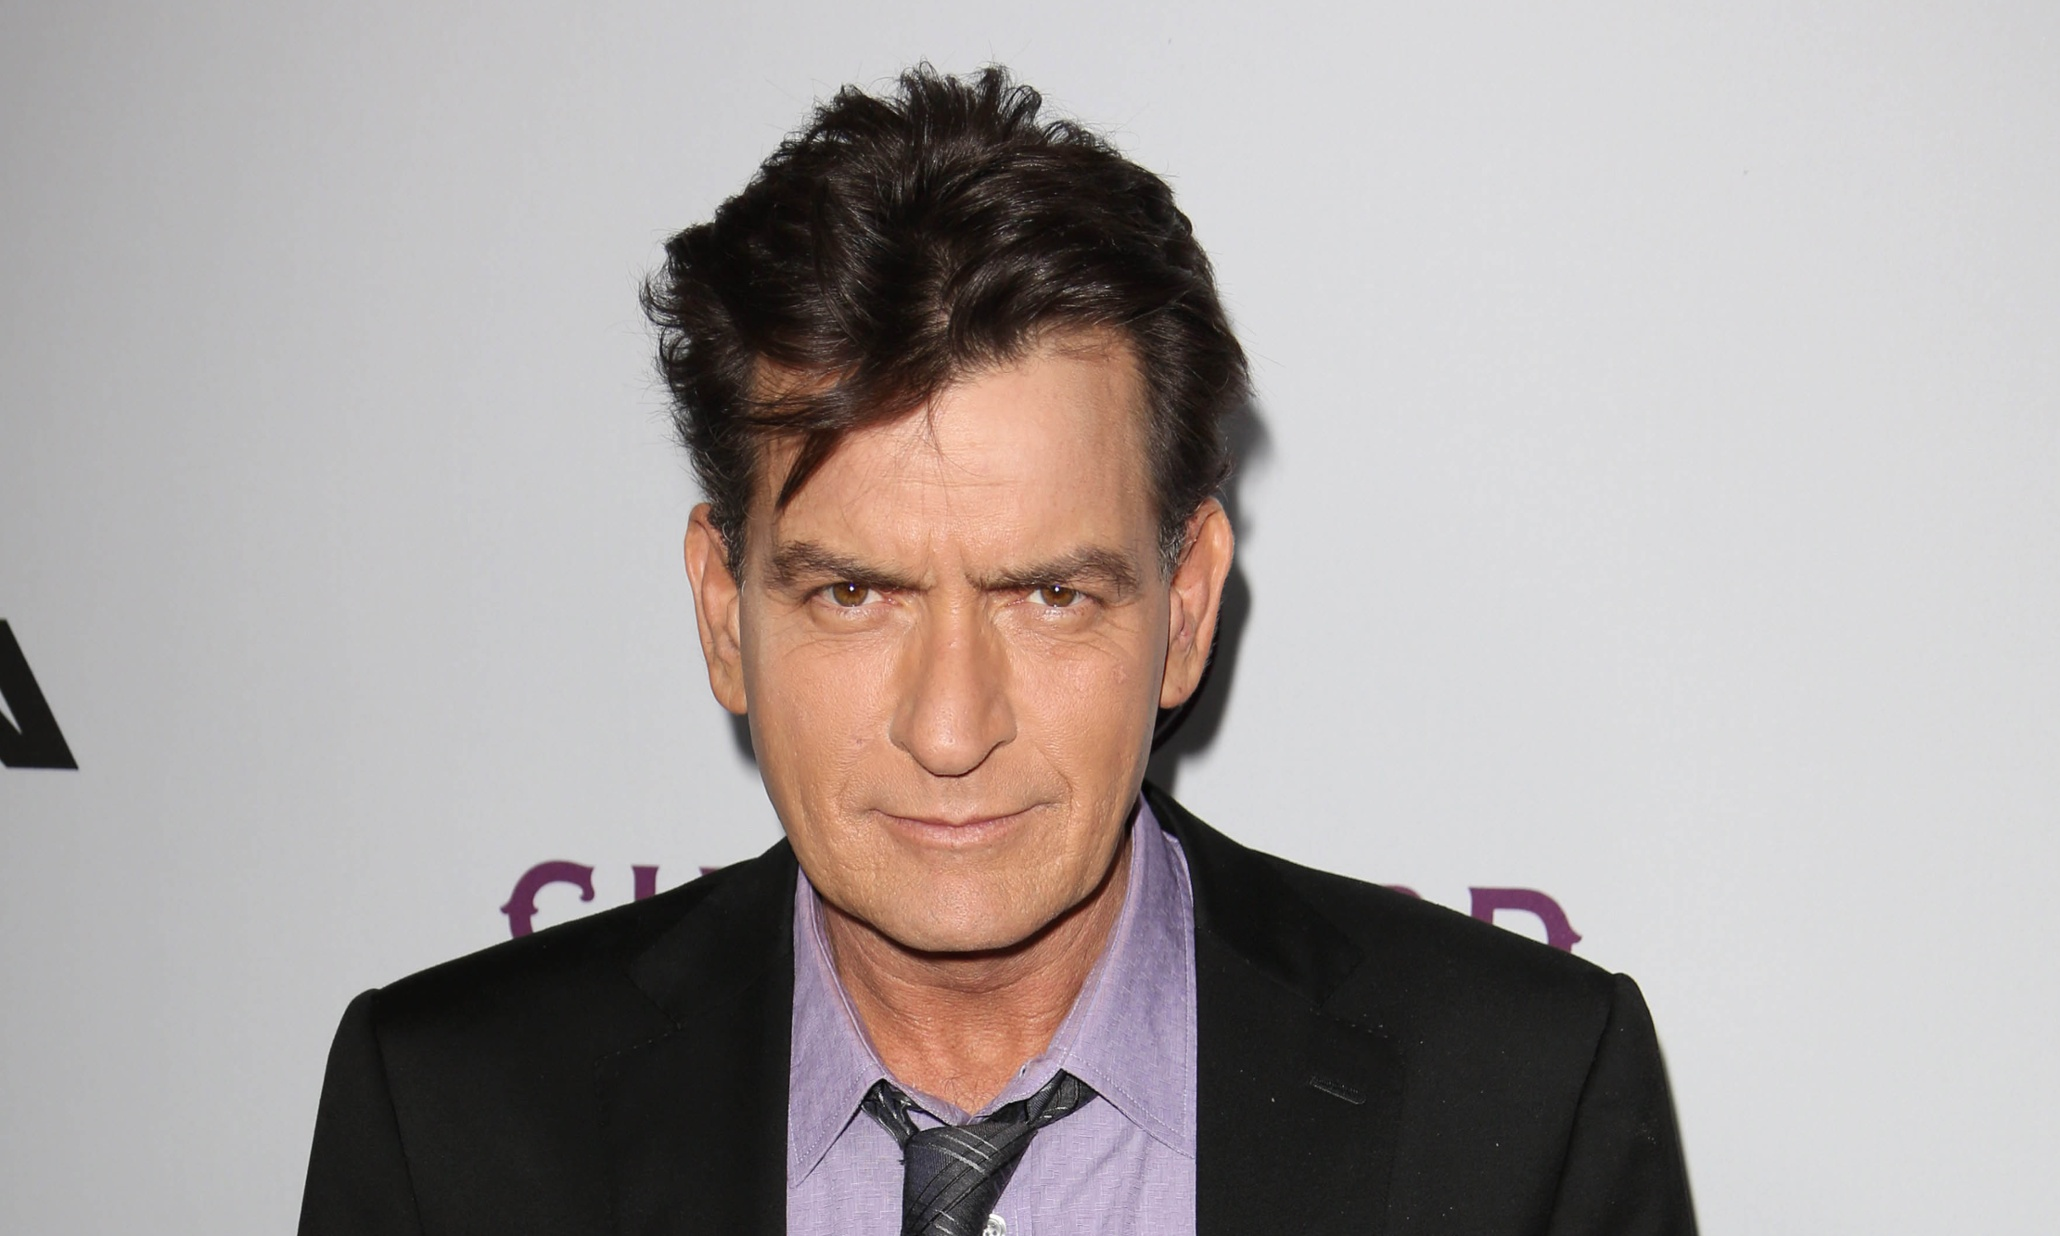 Charlie Sheen launches racist Twitter tirade against Barack Obama